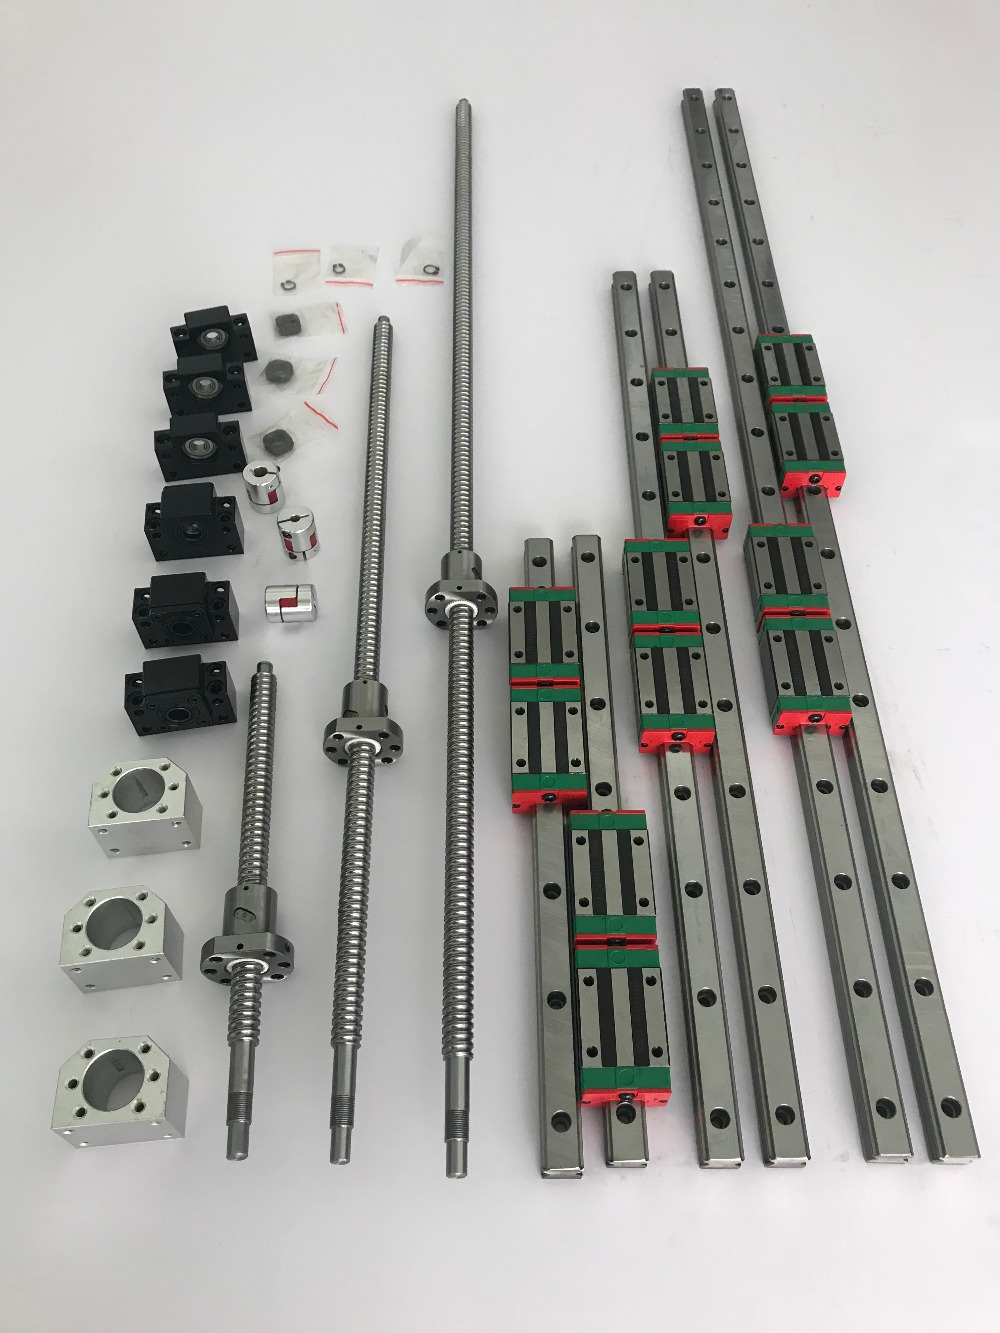 6 sets linear guide rail HGR20- 400/700/1000mm + SFU1605- 400/700/1000mm Ballscrew + BK/BF12 + Nut housing + Coupling CNC parts 3sets square linear rails kit l 400 700 1000mm